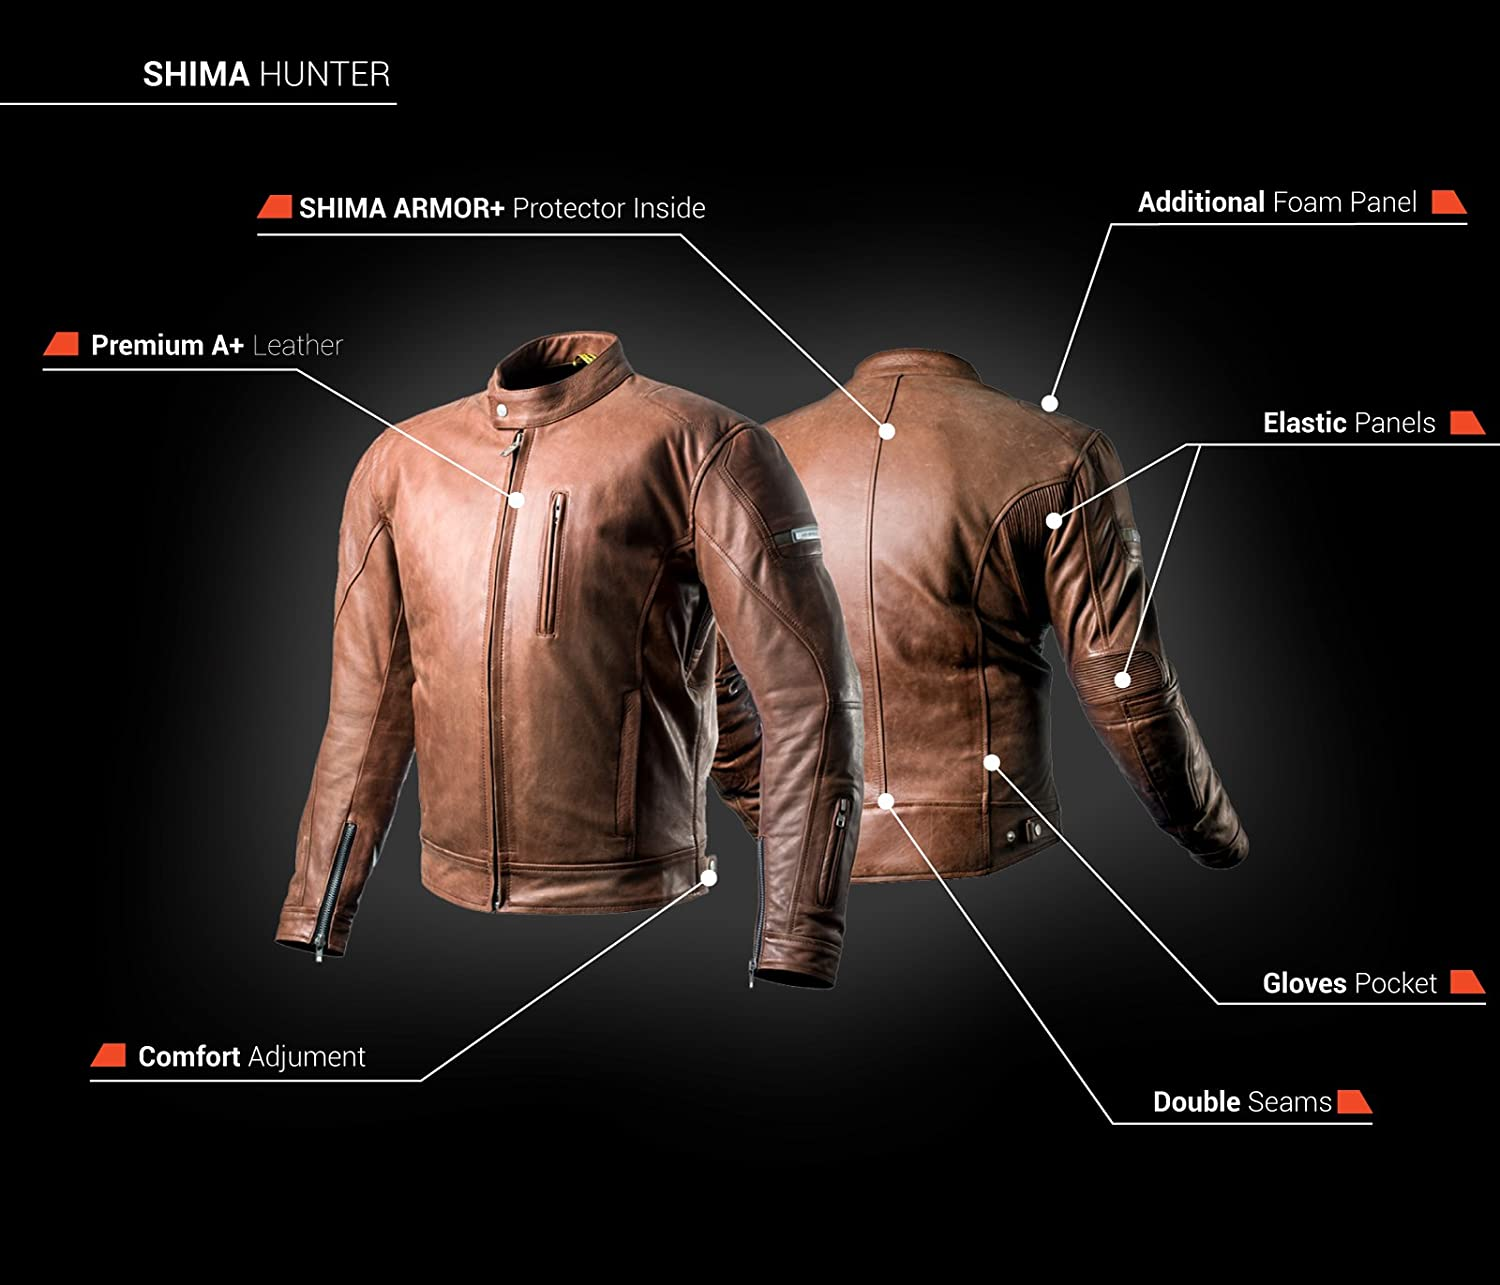 Amazon.com: SHIMA HUNTER, Slim Back Medium Protector Summer Vintage Retro Mens Leather Protective Motorcycle Jacket with Armor and Inside Pocket (S-XXL) ...